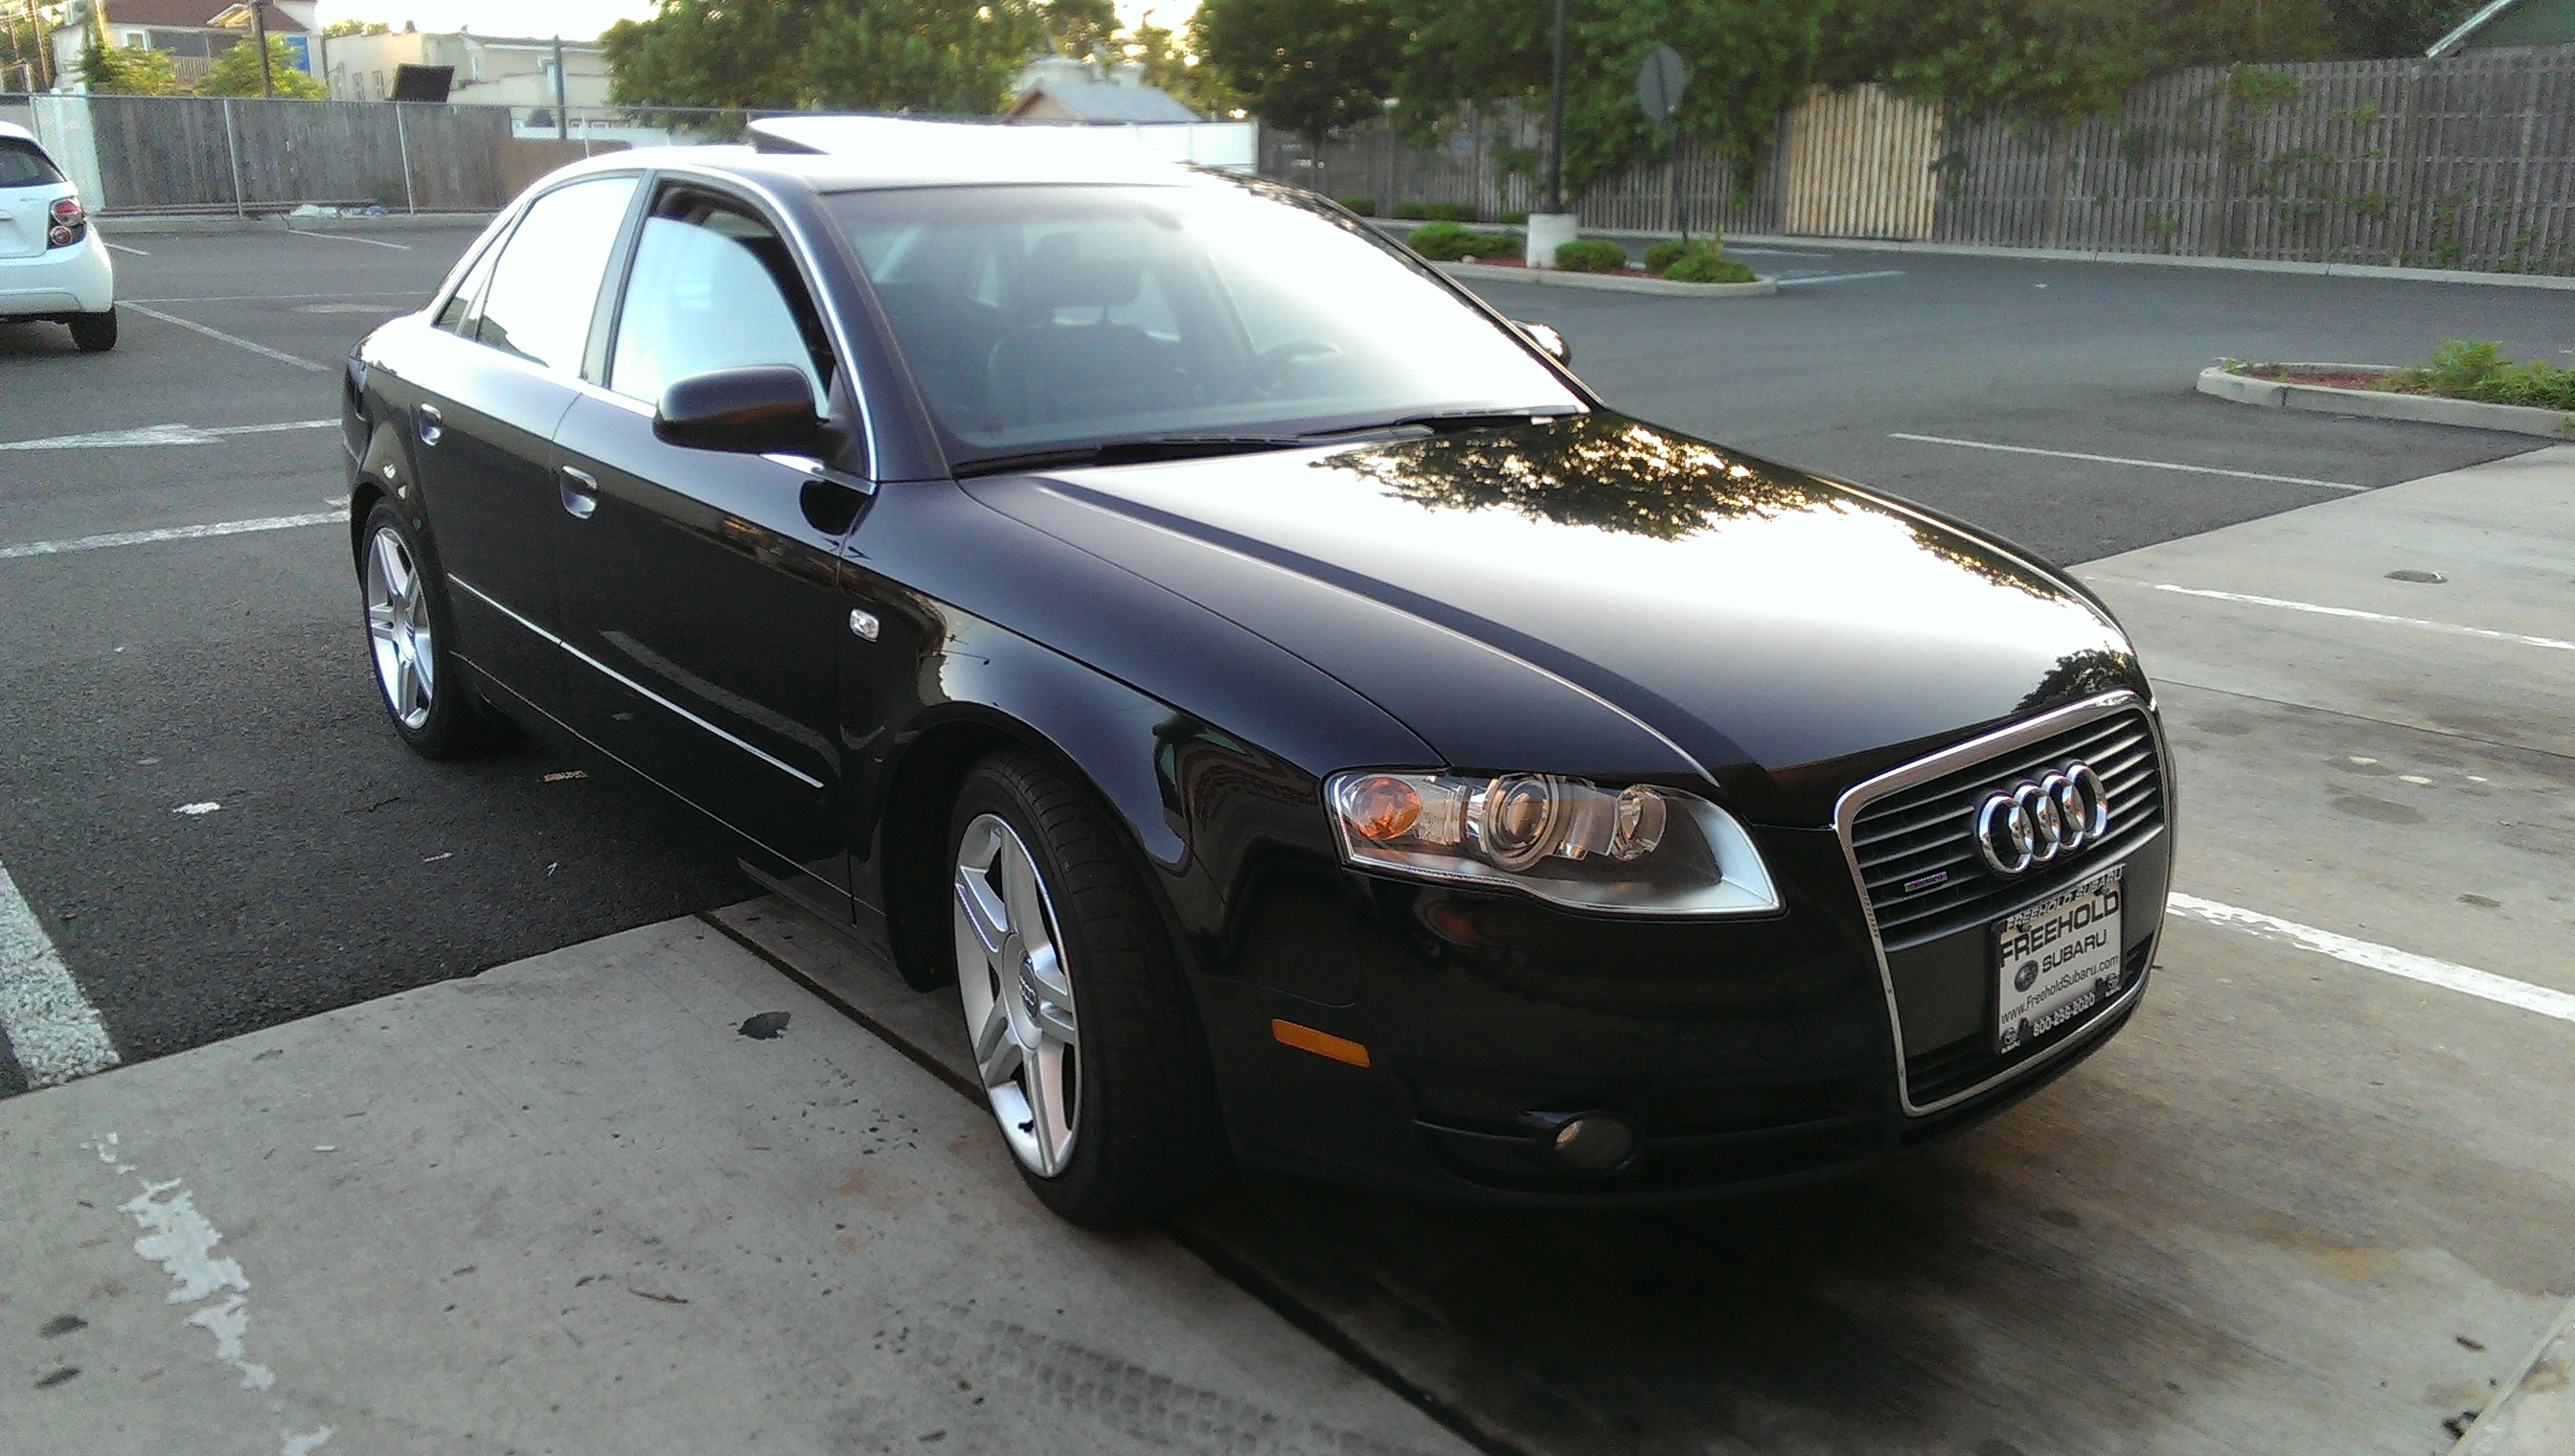 rickysmx5 2007 audi a42 0t quattro sedan 4d specs photos modification info at cardomain. Black Bedroom Furniture Sets. Home Design Ideas